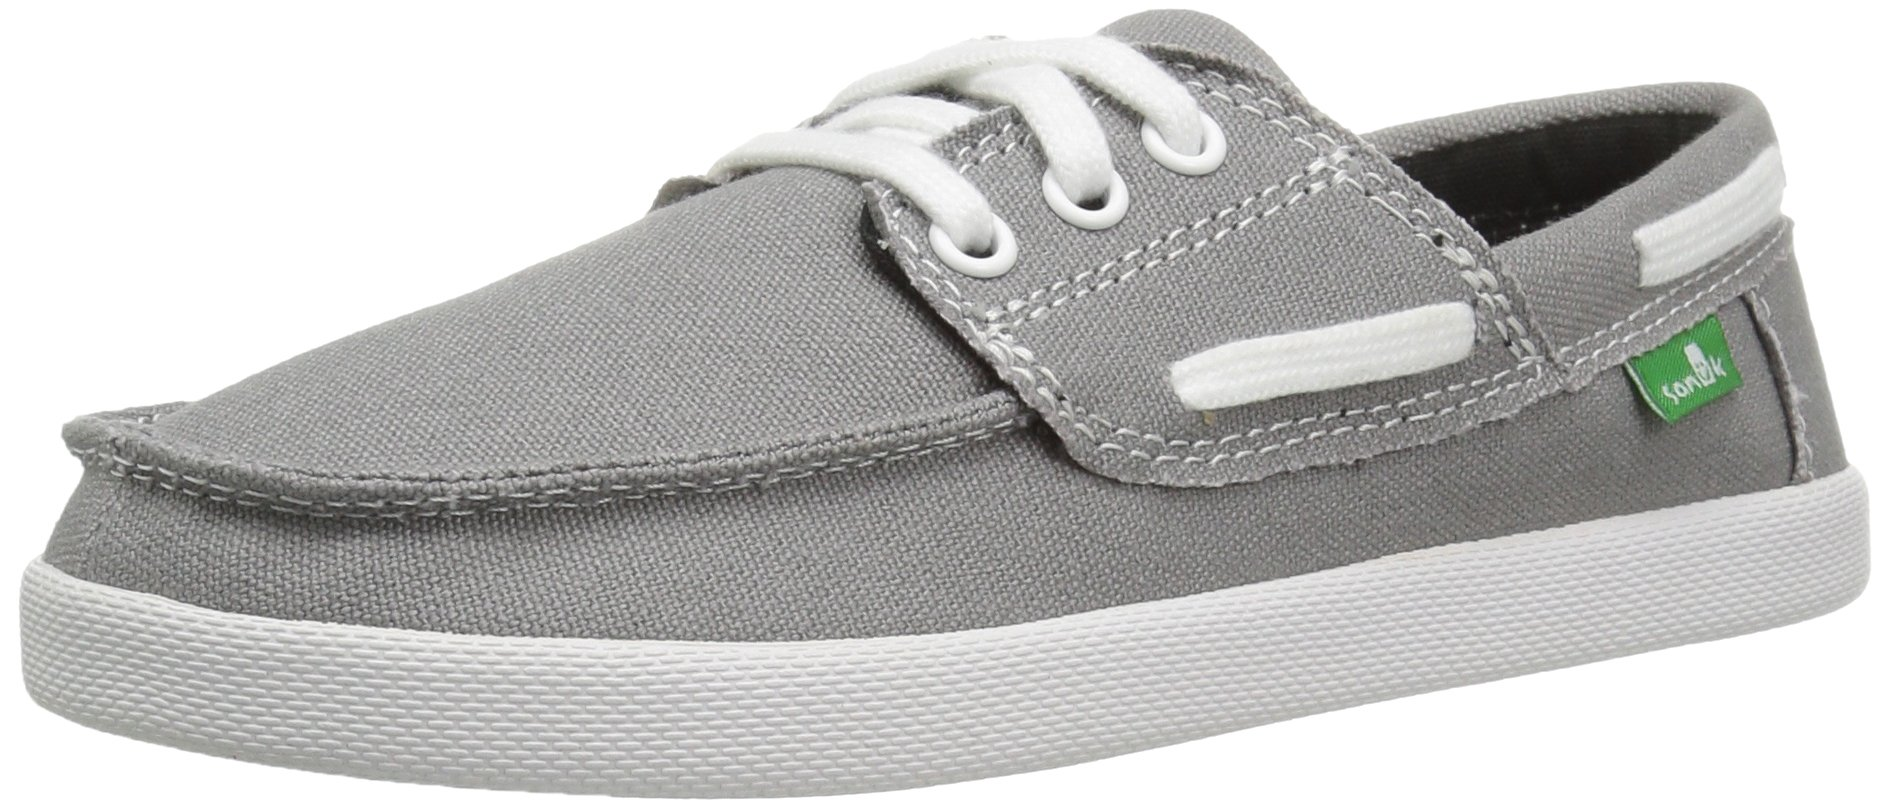 Sanuk Kids Boys' Lil Deck Hand Boat Shoe (Toddler/Little Kid/Big Kid), Grey, 2 M US Little Kid